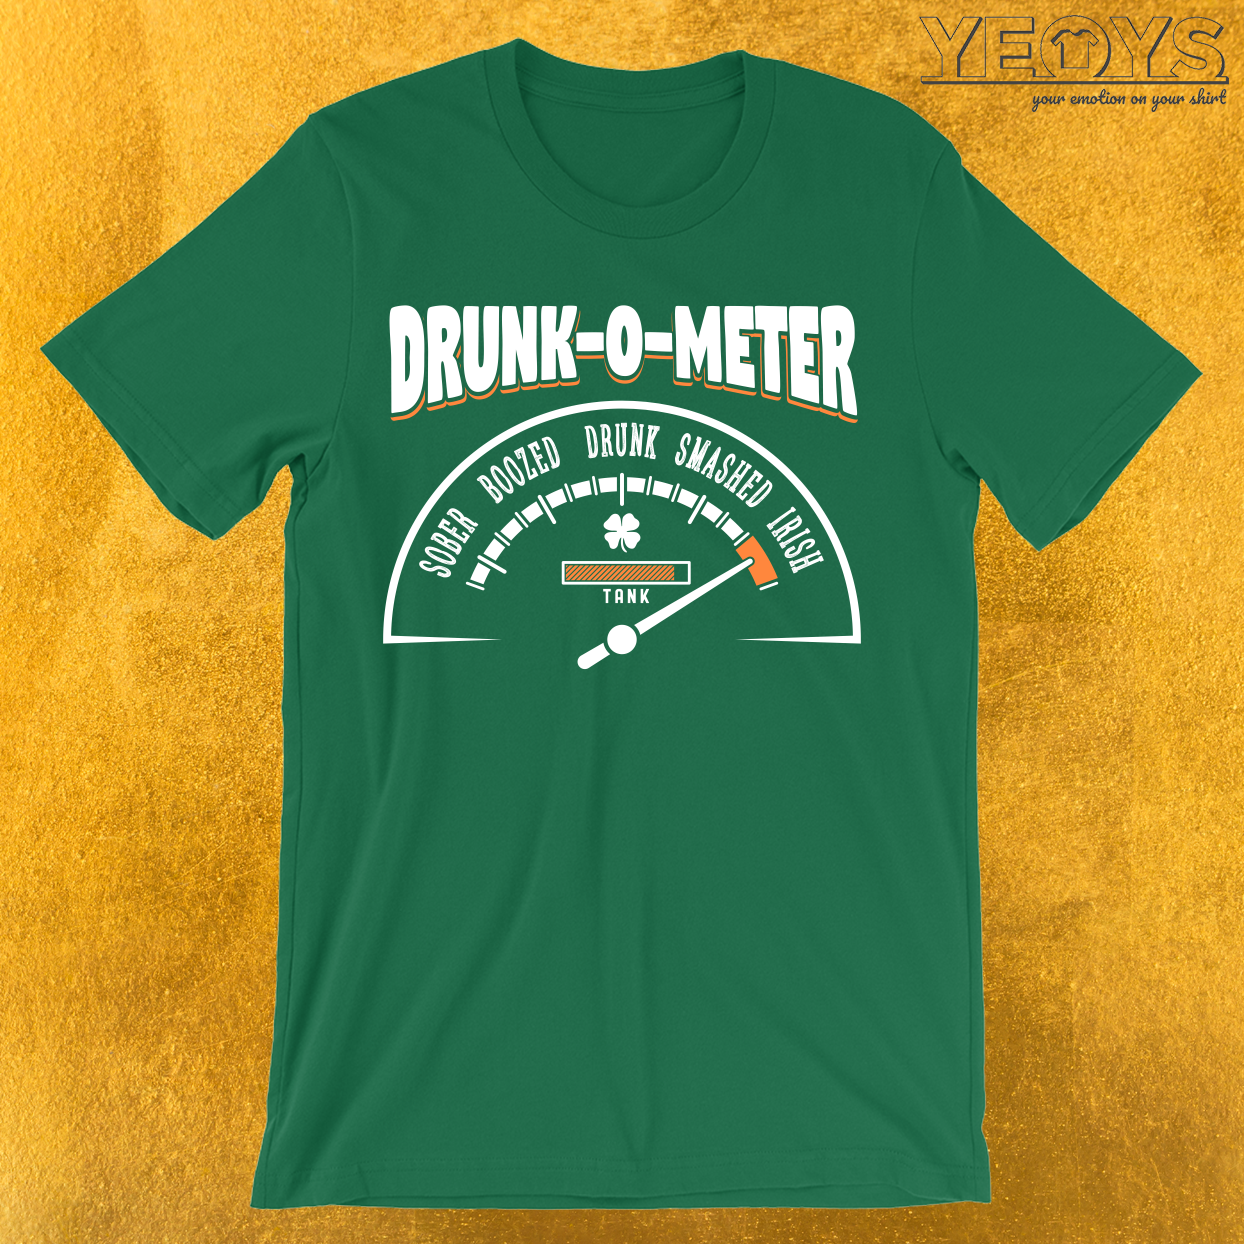 Irish Drunk-O-Meter T-Shirt